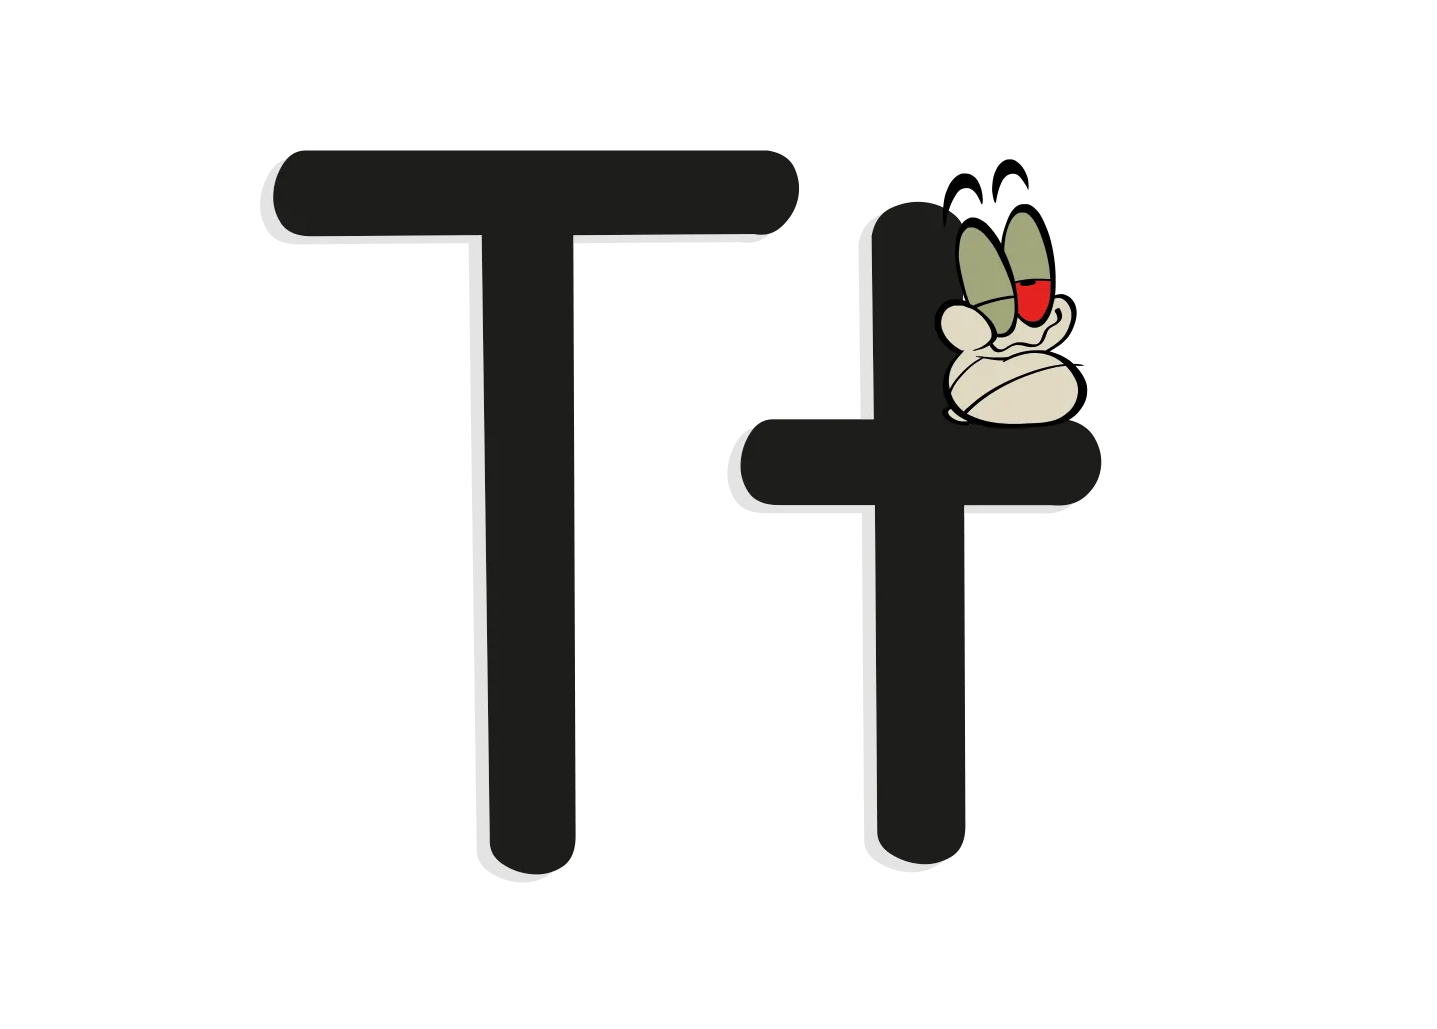 The letter T with an illustrated worm